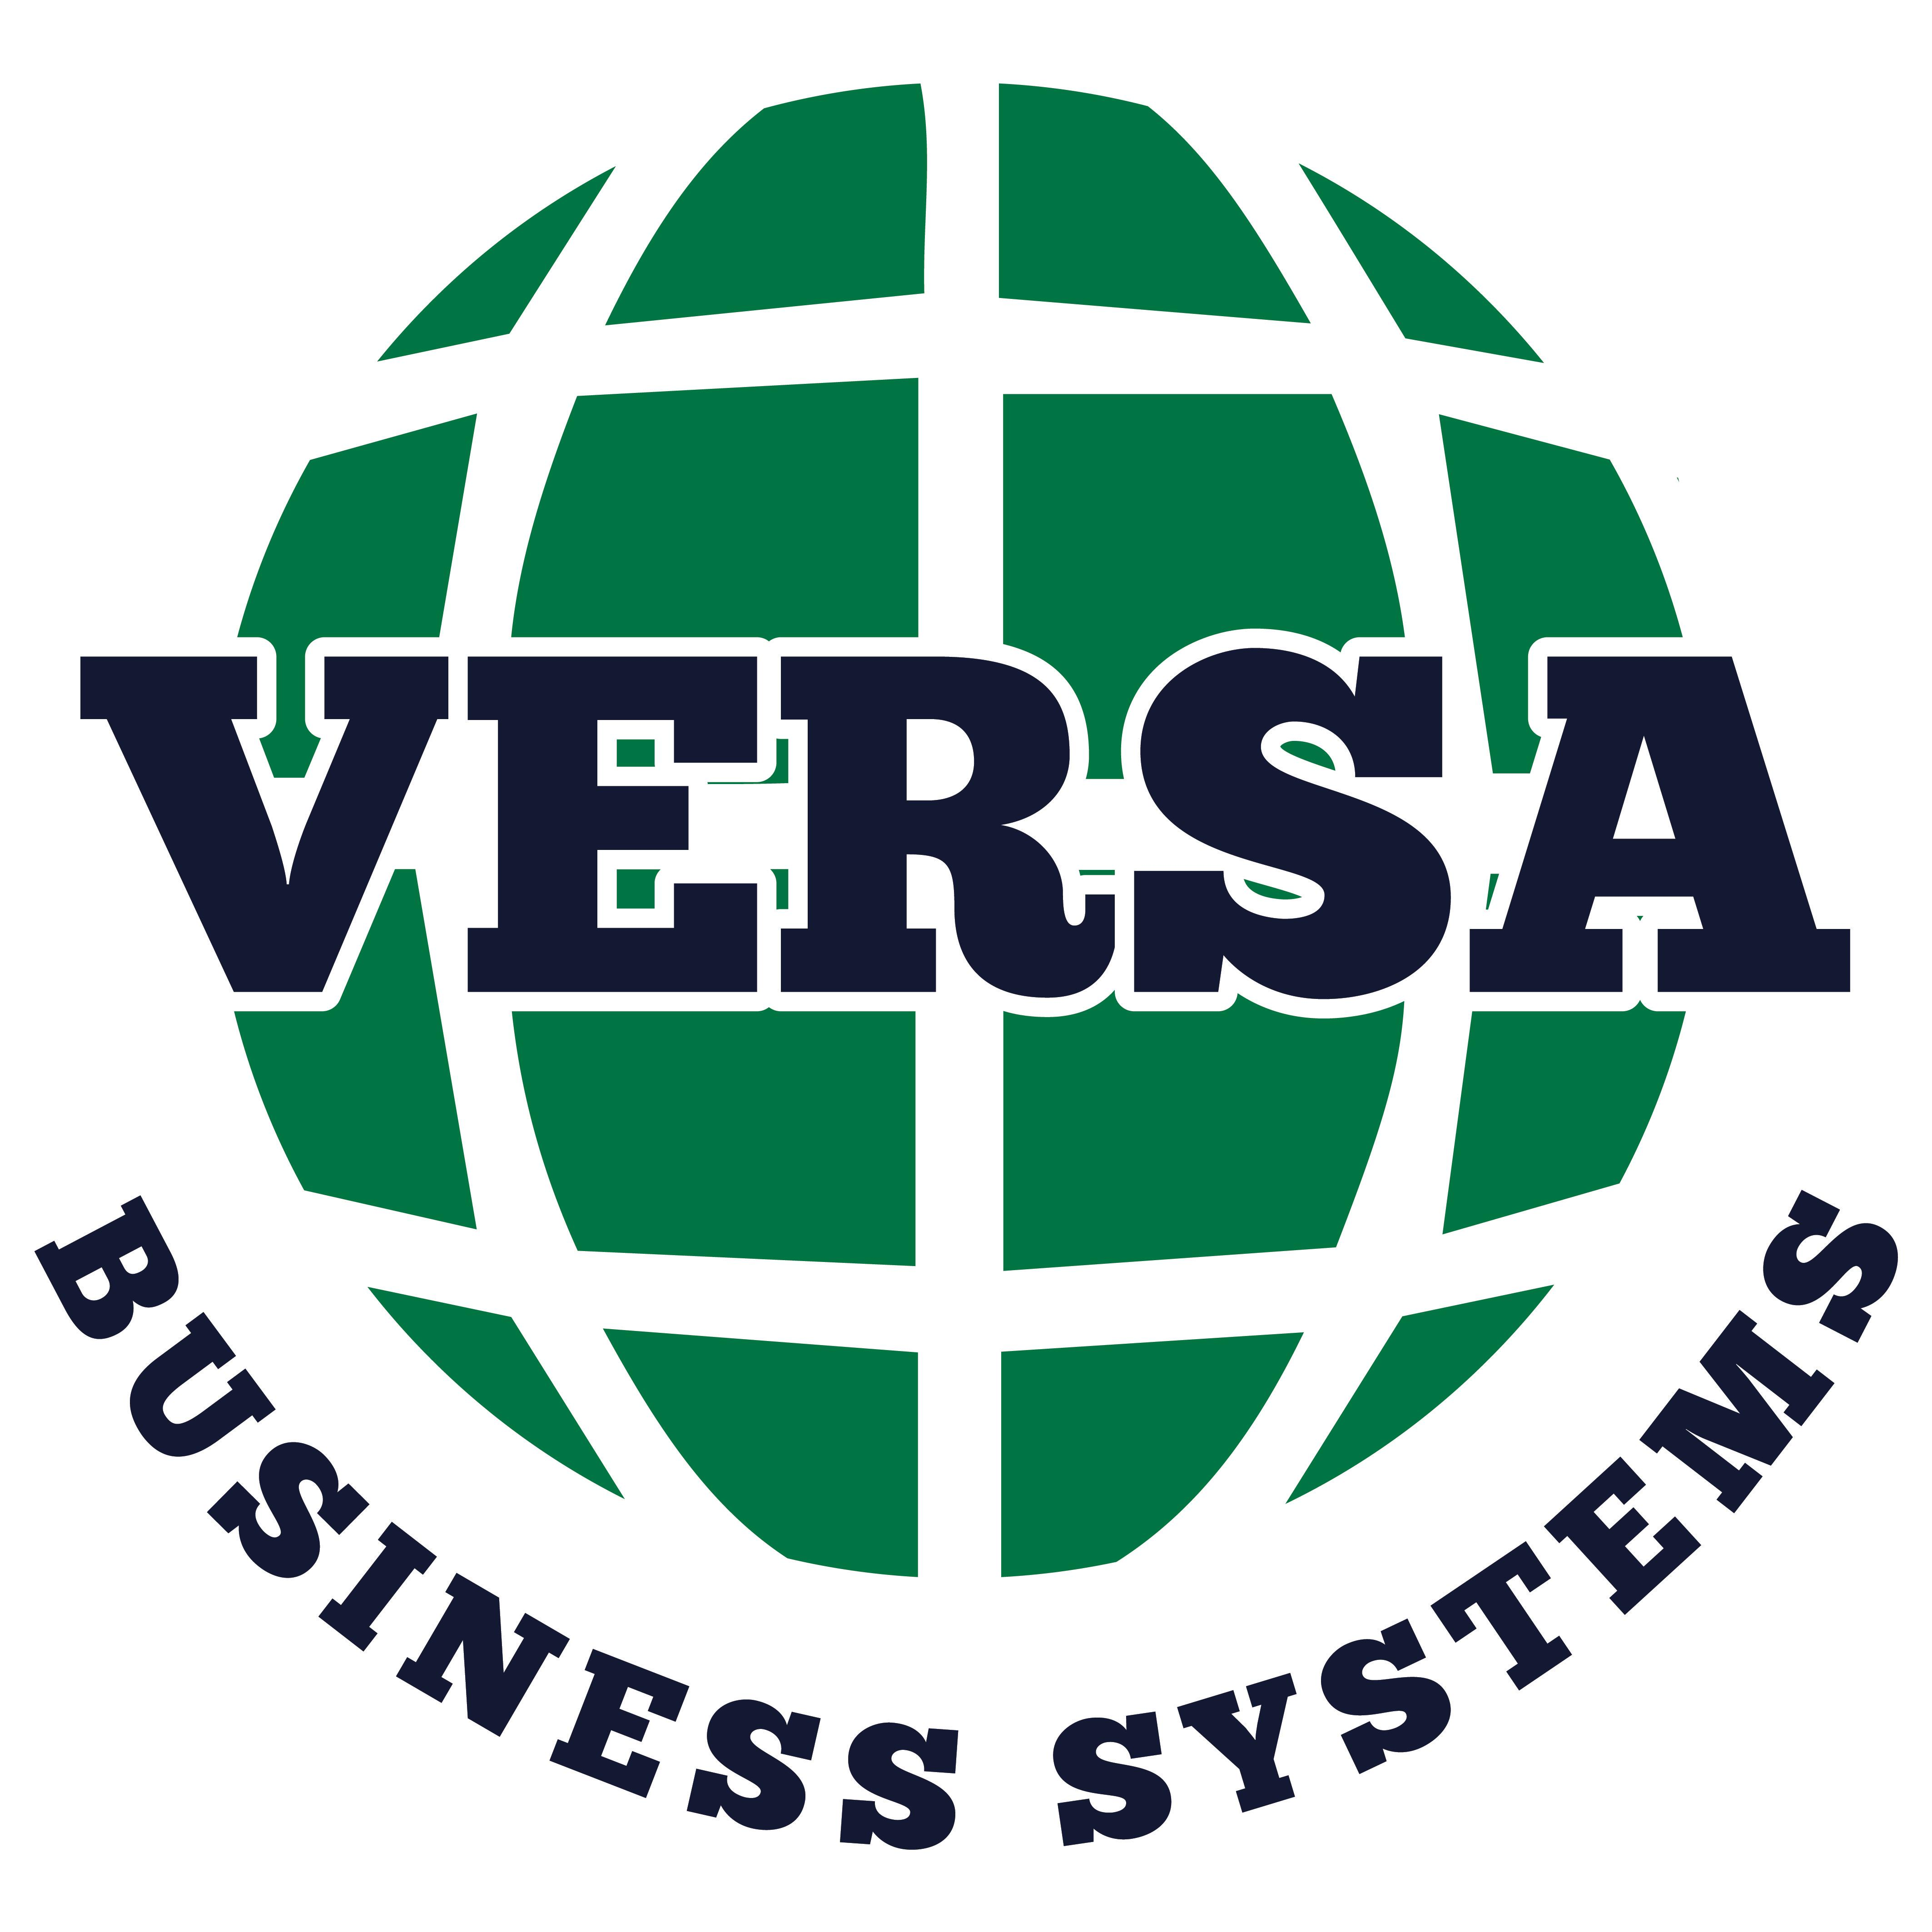 Versa Business Systems image 1